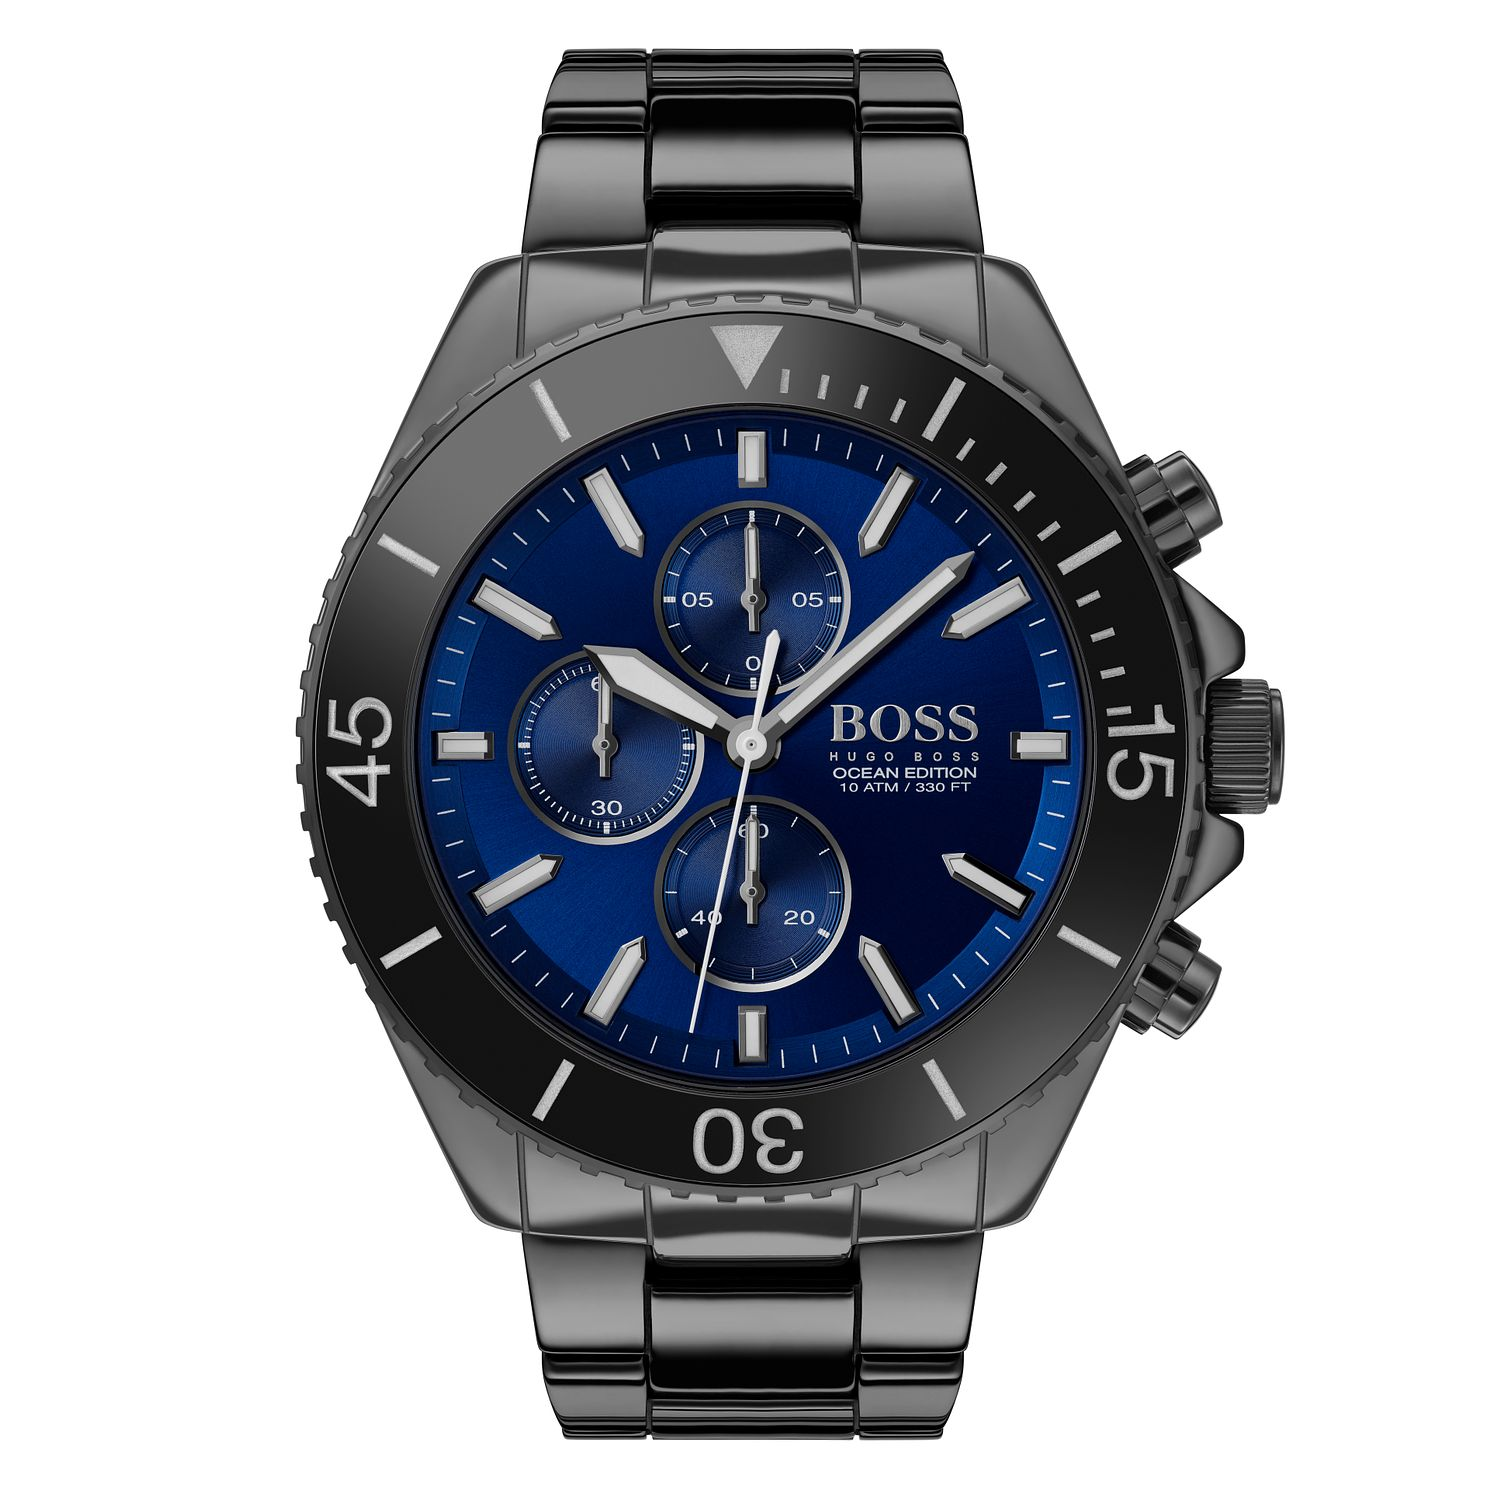 BOSS Ocean Edition Men's Black Ceramic Bracelet Watch - Product number 2776863